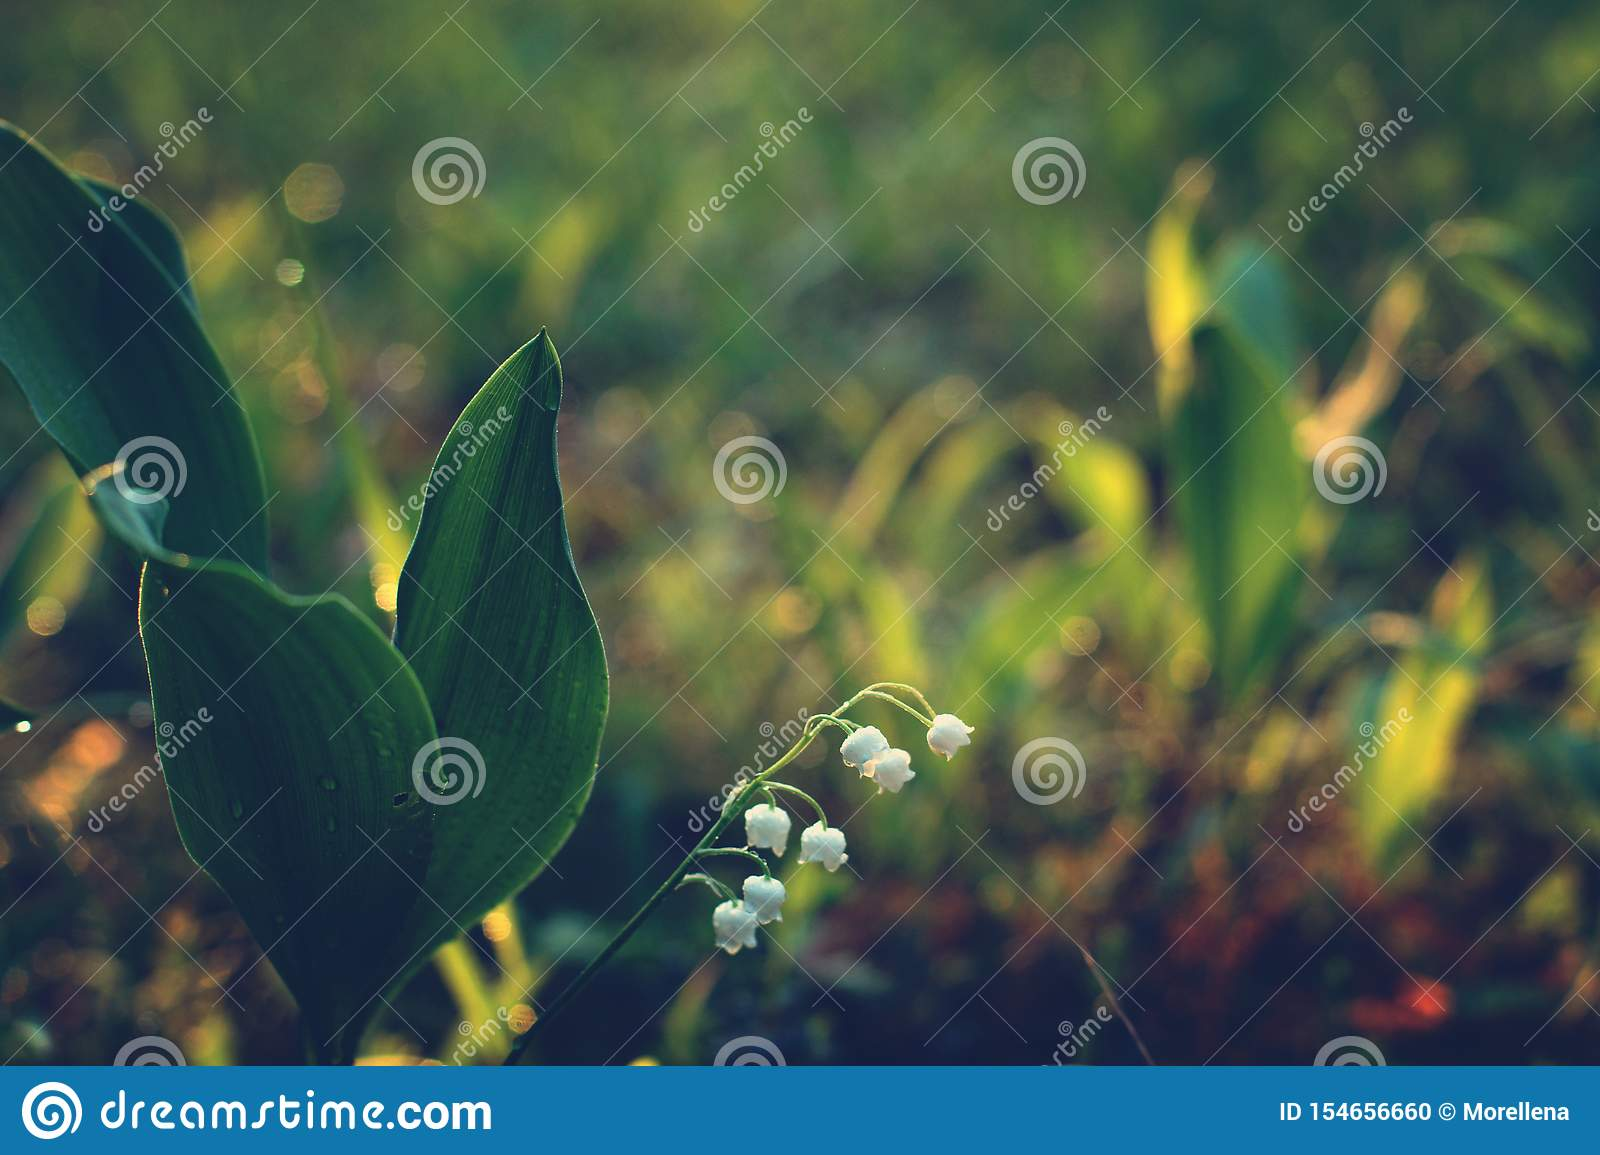 The delicate flower of lily of the valley bowed to the ground at dawn